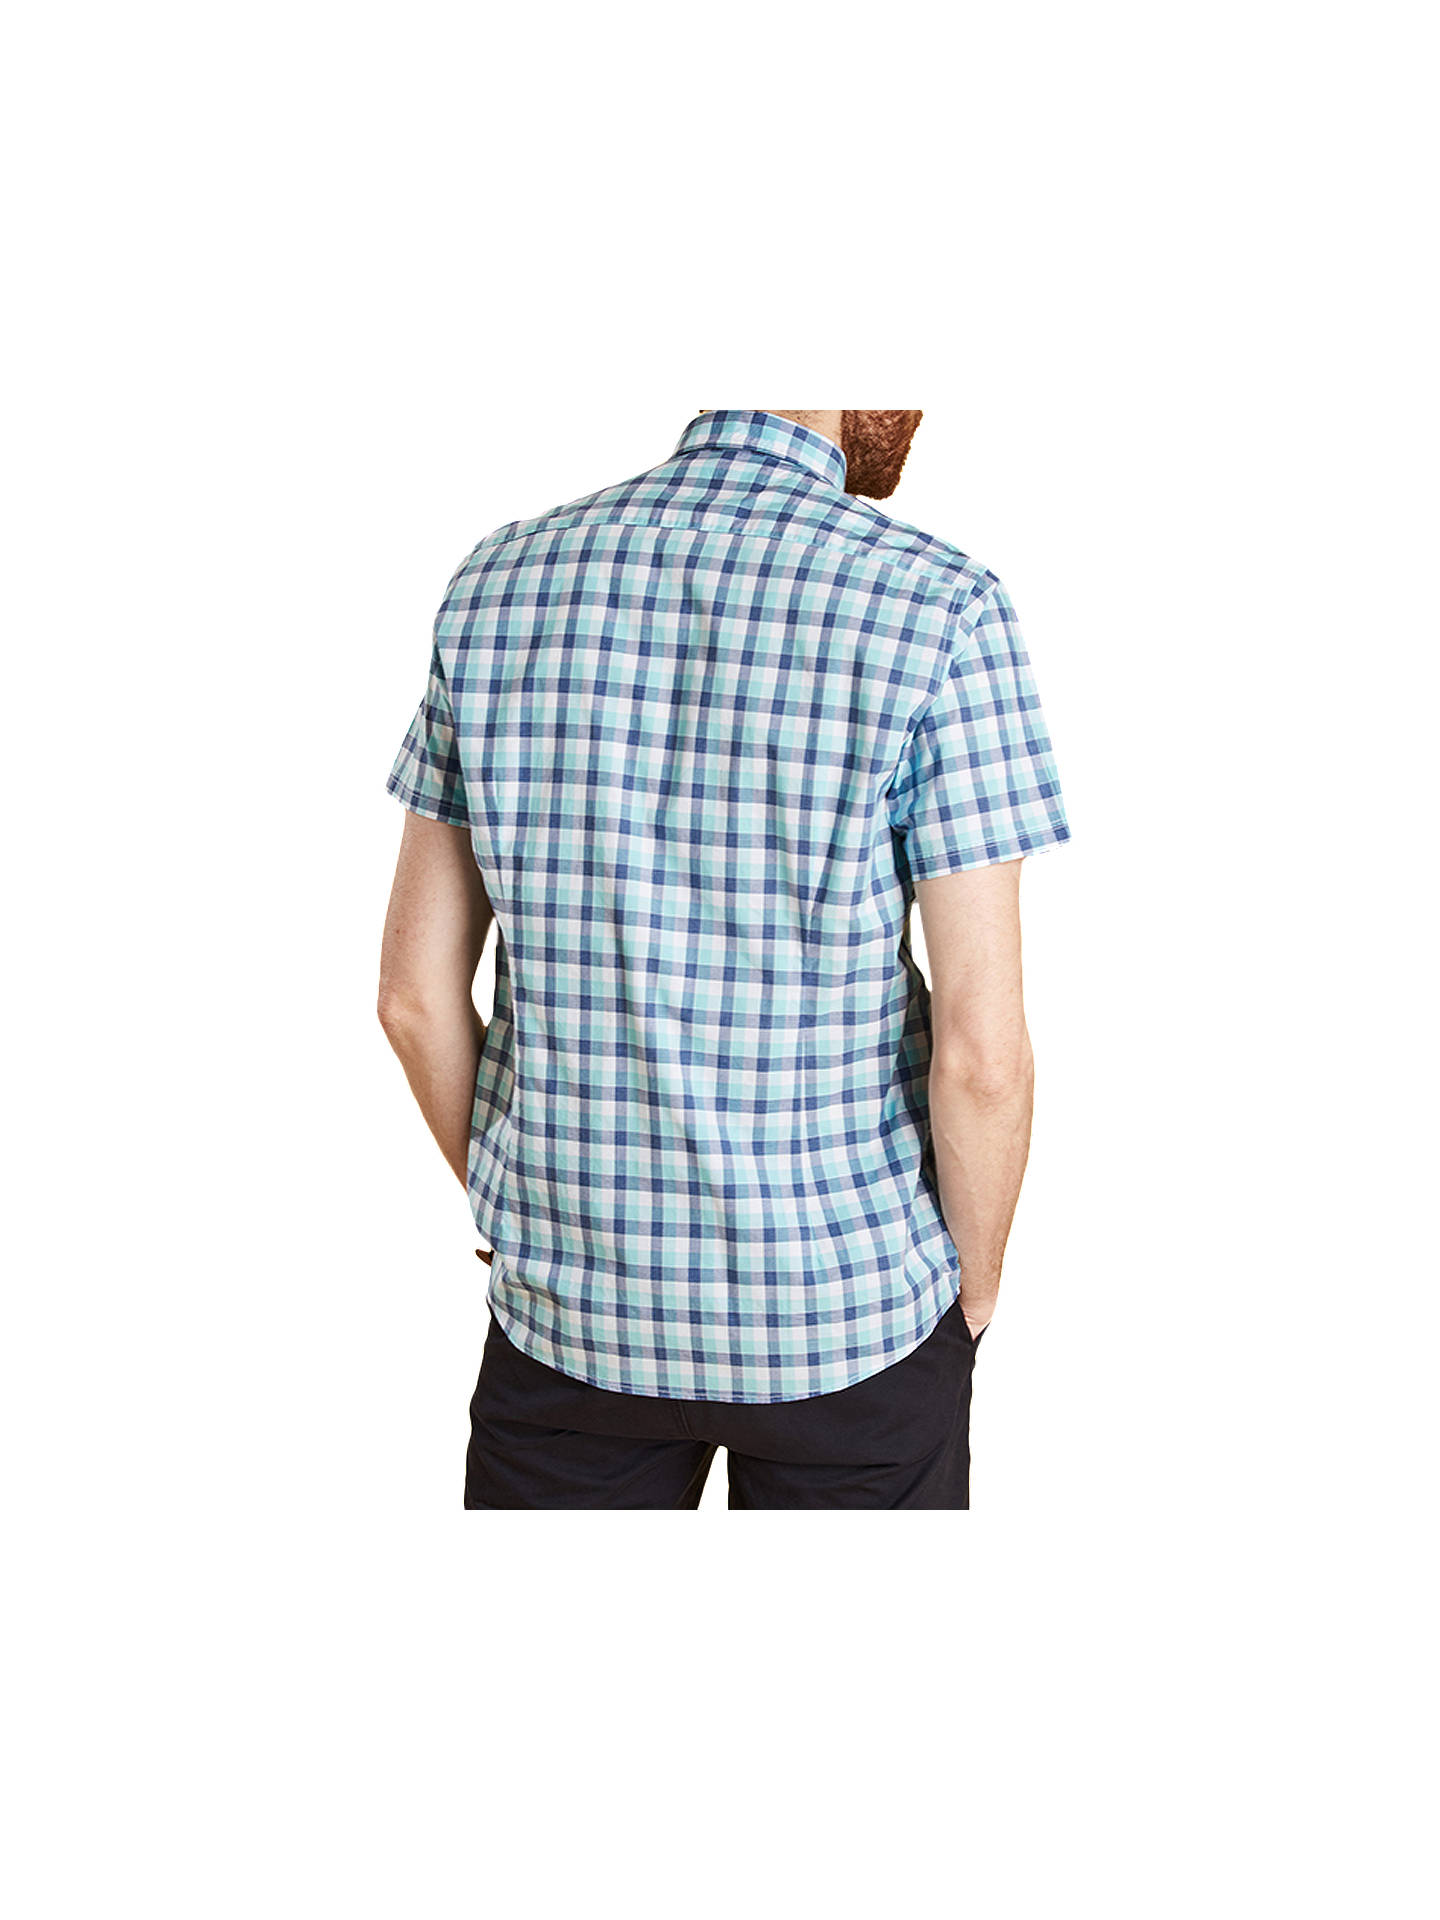 BuyBarbour Barge Short Sleeve Checked Shirt, Aqua, S Online at johnlewis.com